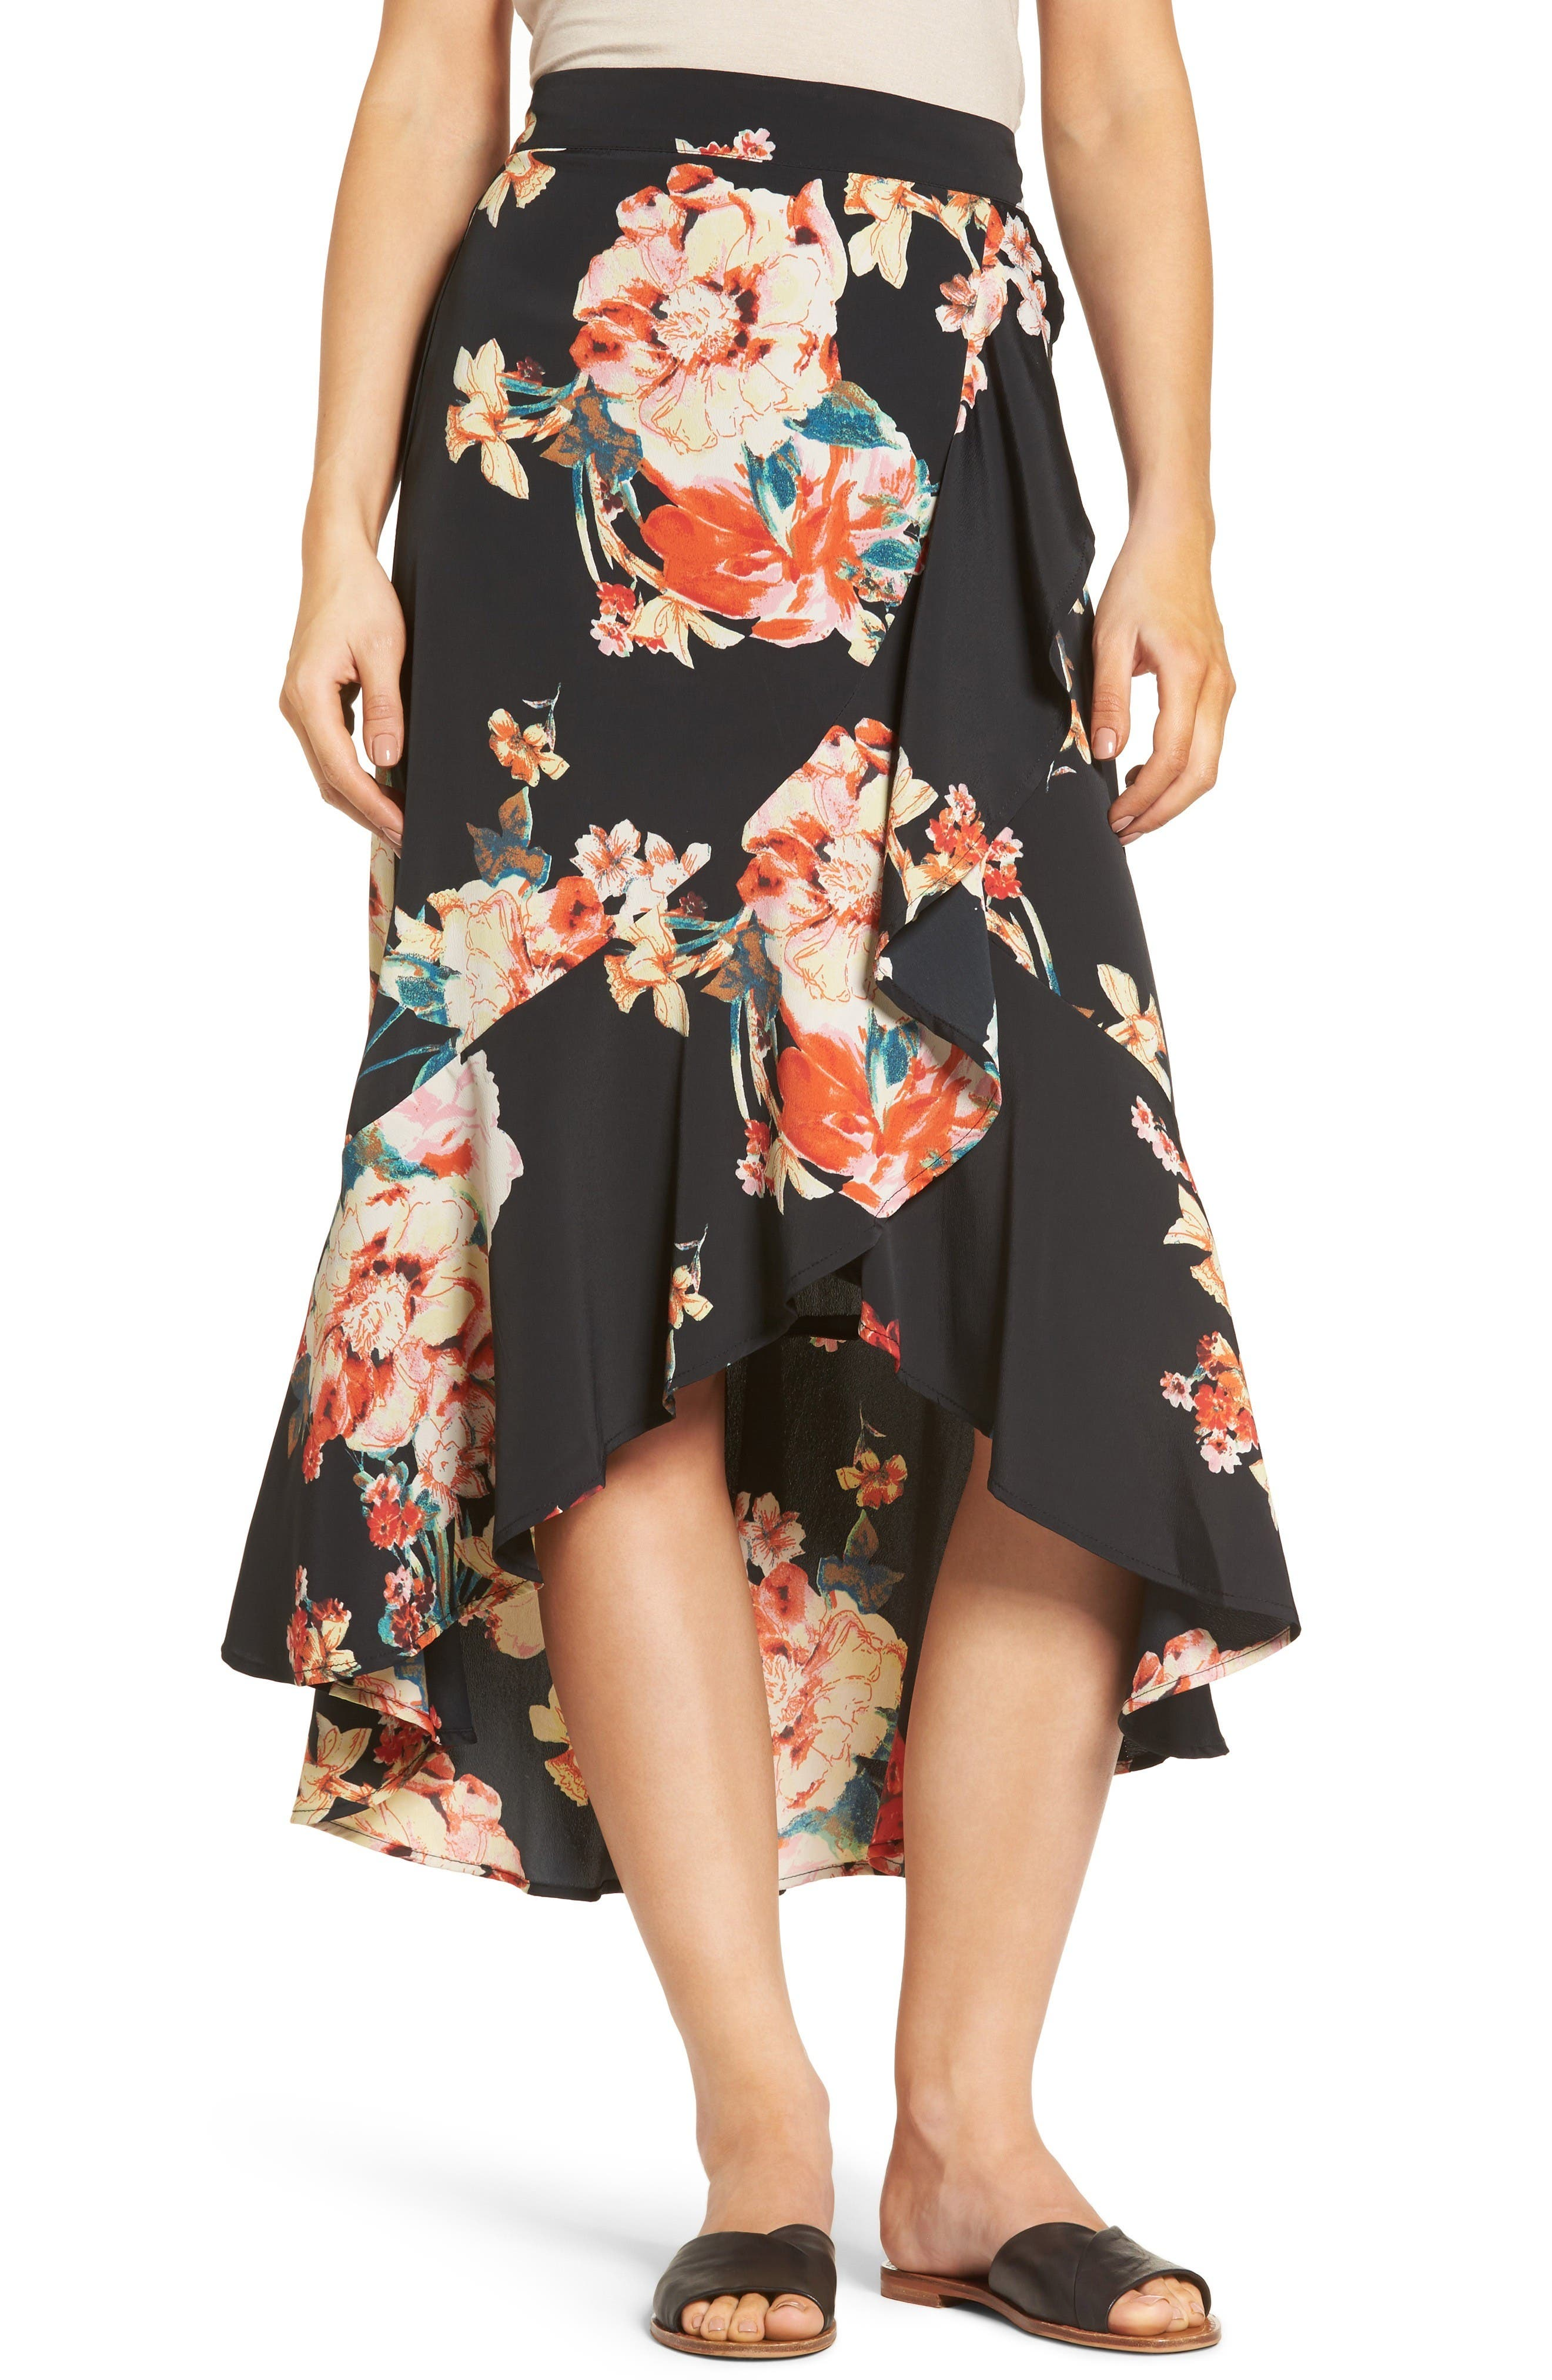 Band of Gypsies Floral Print Ruffle Skirt